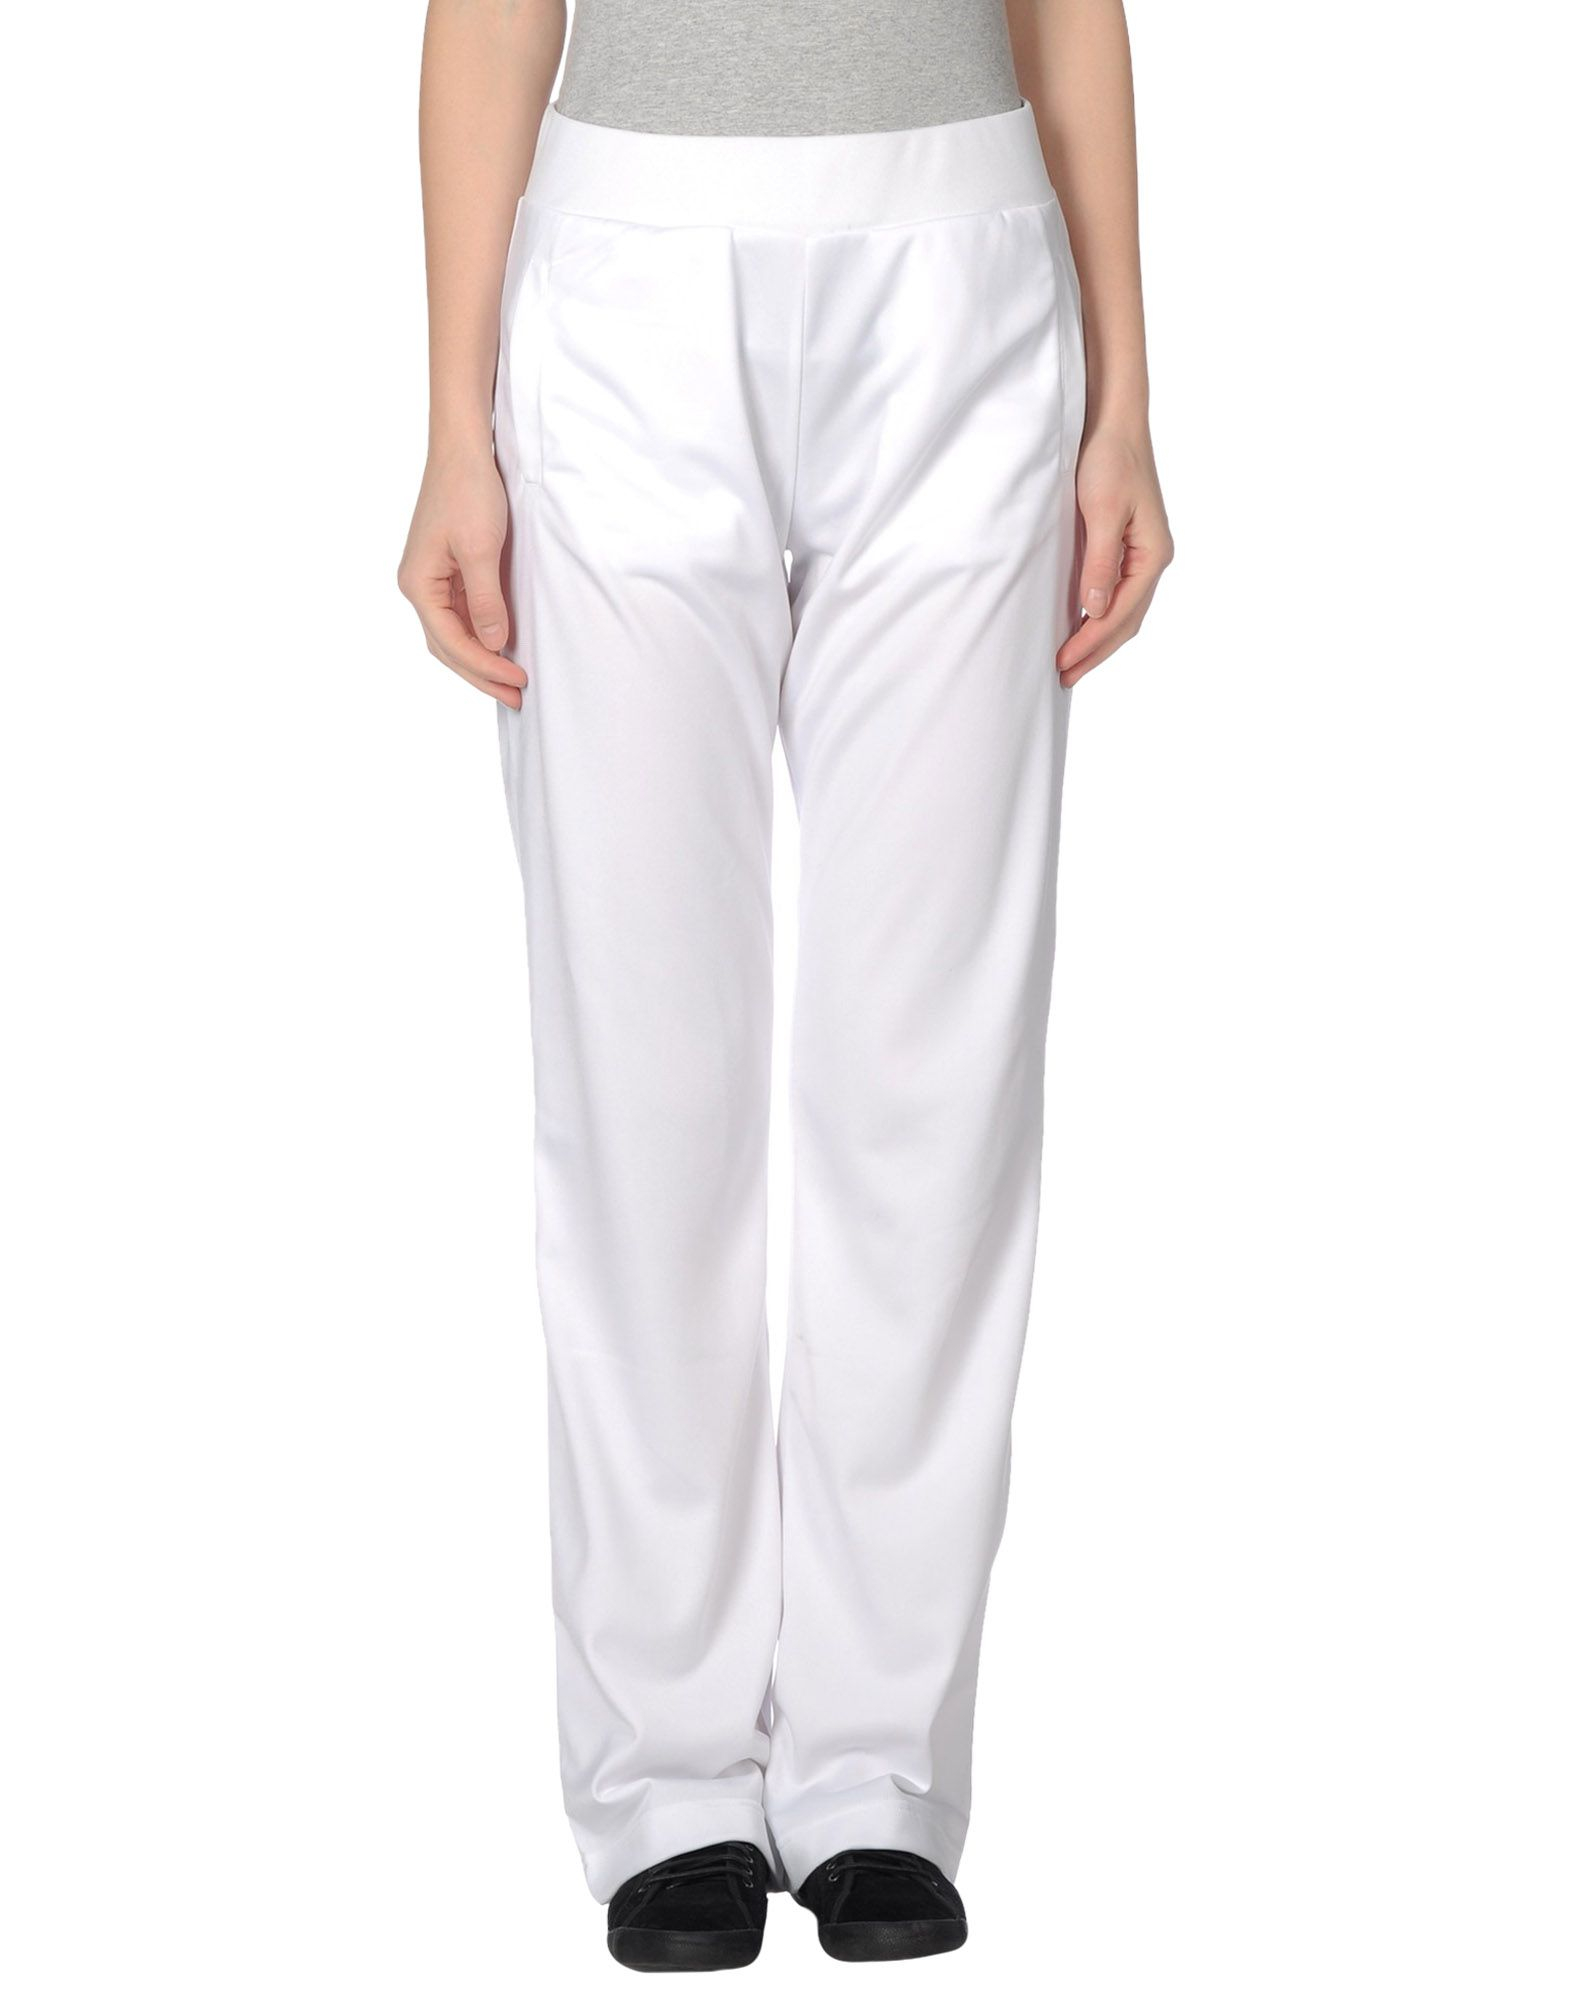 Women's Jogger Pants Every on-trend wardrobe needs a pair of Women's Joggers from Kohl's. Kohl's has all the popular active brands of leggings, like womens Nike jogger pants and womens Under Armour Jogger Pants.